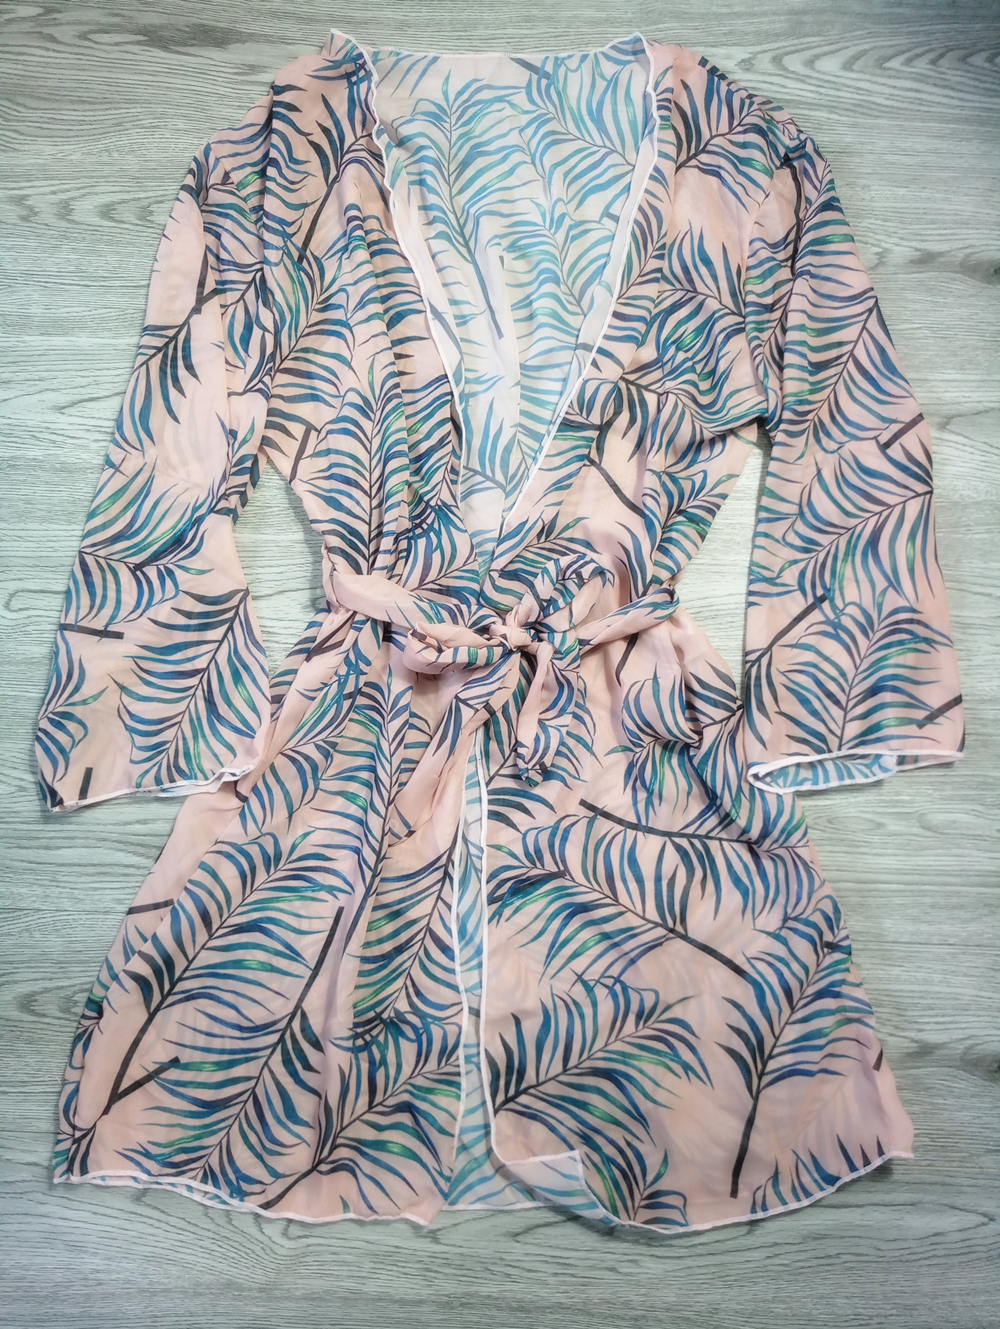 2018 Pareo Beach Cover Up Leaf Printing Bikini Cover Up Swimwear Women Robe De Plage Beach Cardigan Bathing Suit Cover Ups